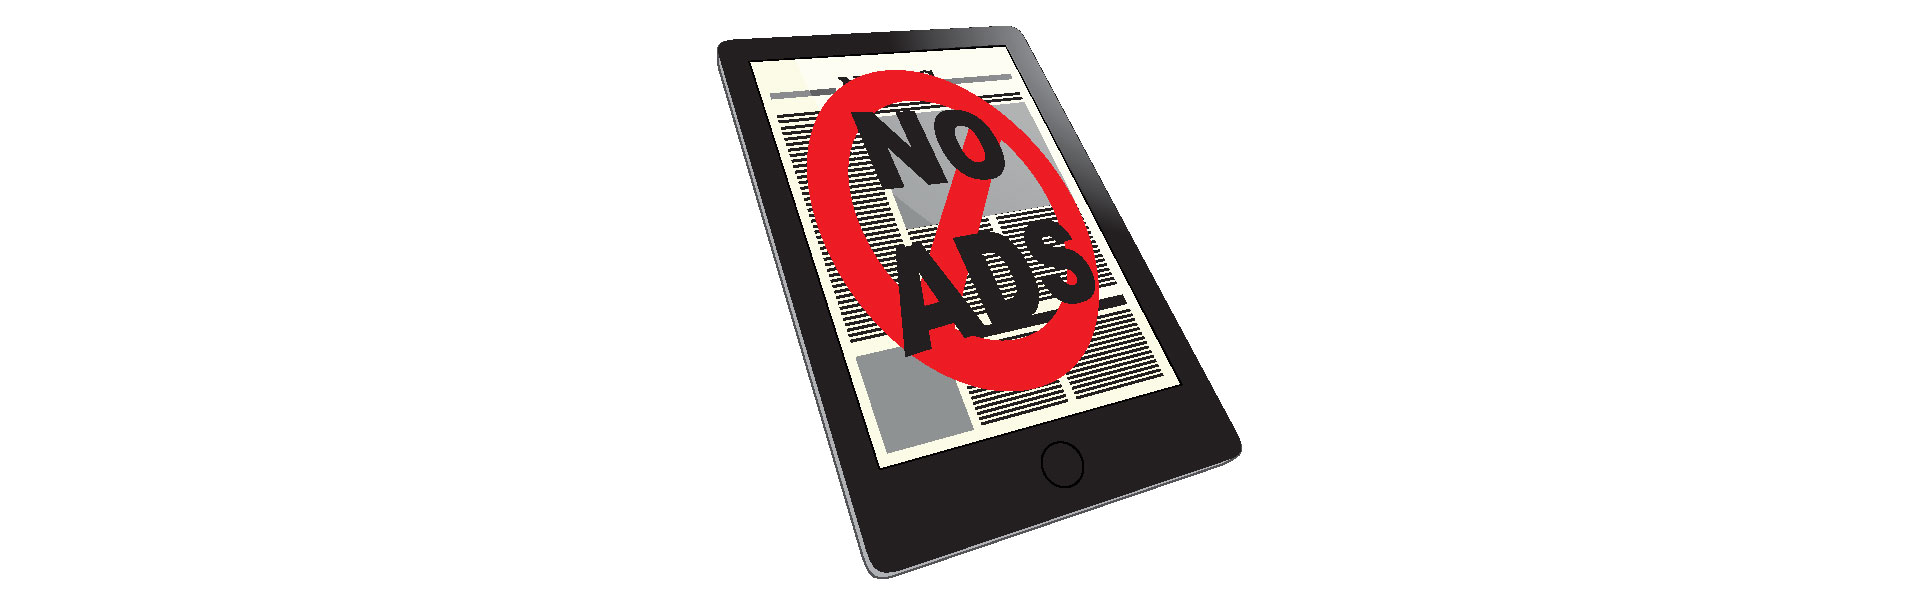 What Are Ad Blockers and Why Should You Care?